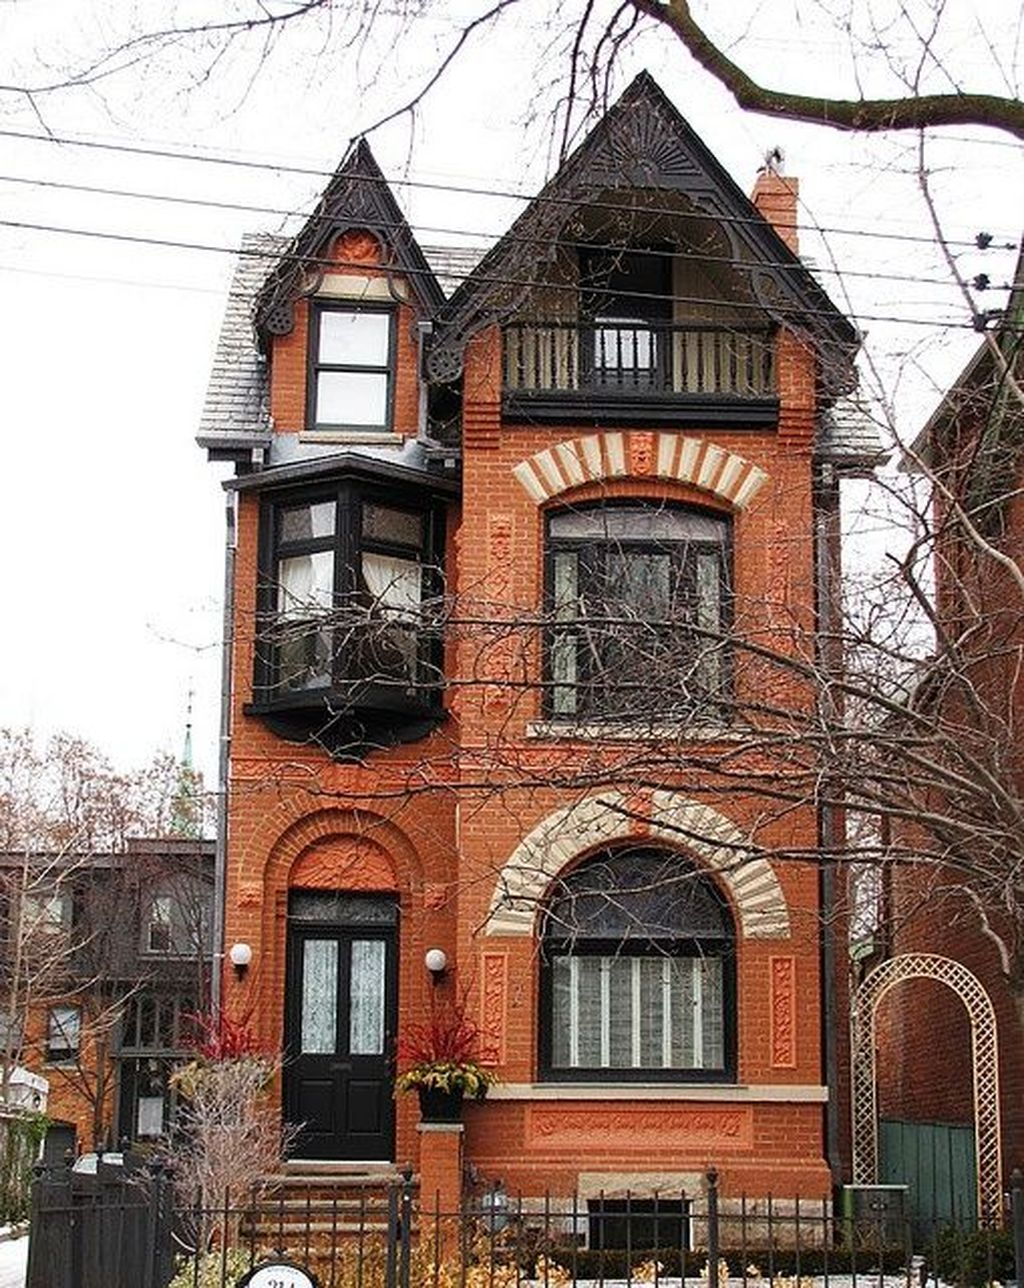 A Gorgeous Double Fronted Victorian Facade Designed By Award Winning Architects Coy Yiontis Edwardian House Heritage House Dream Cottage